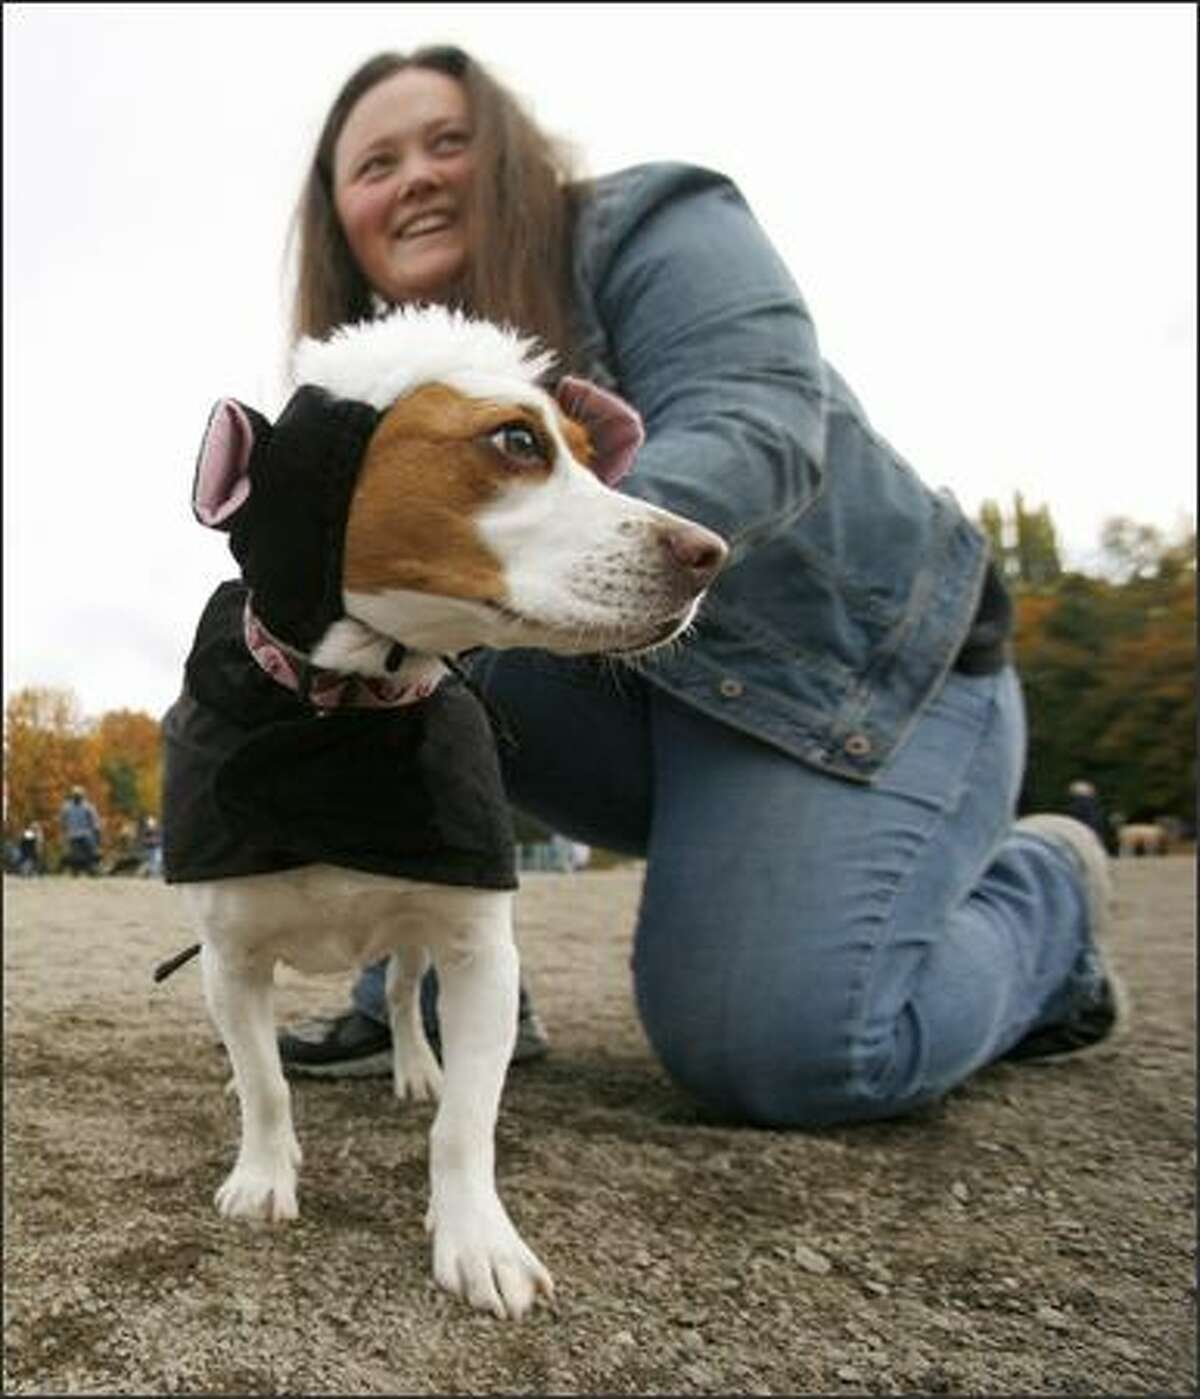 Sarah Carney adjusts the costume of her beagle, Josie.